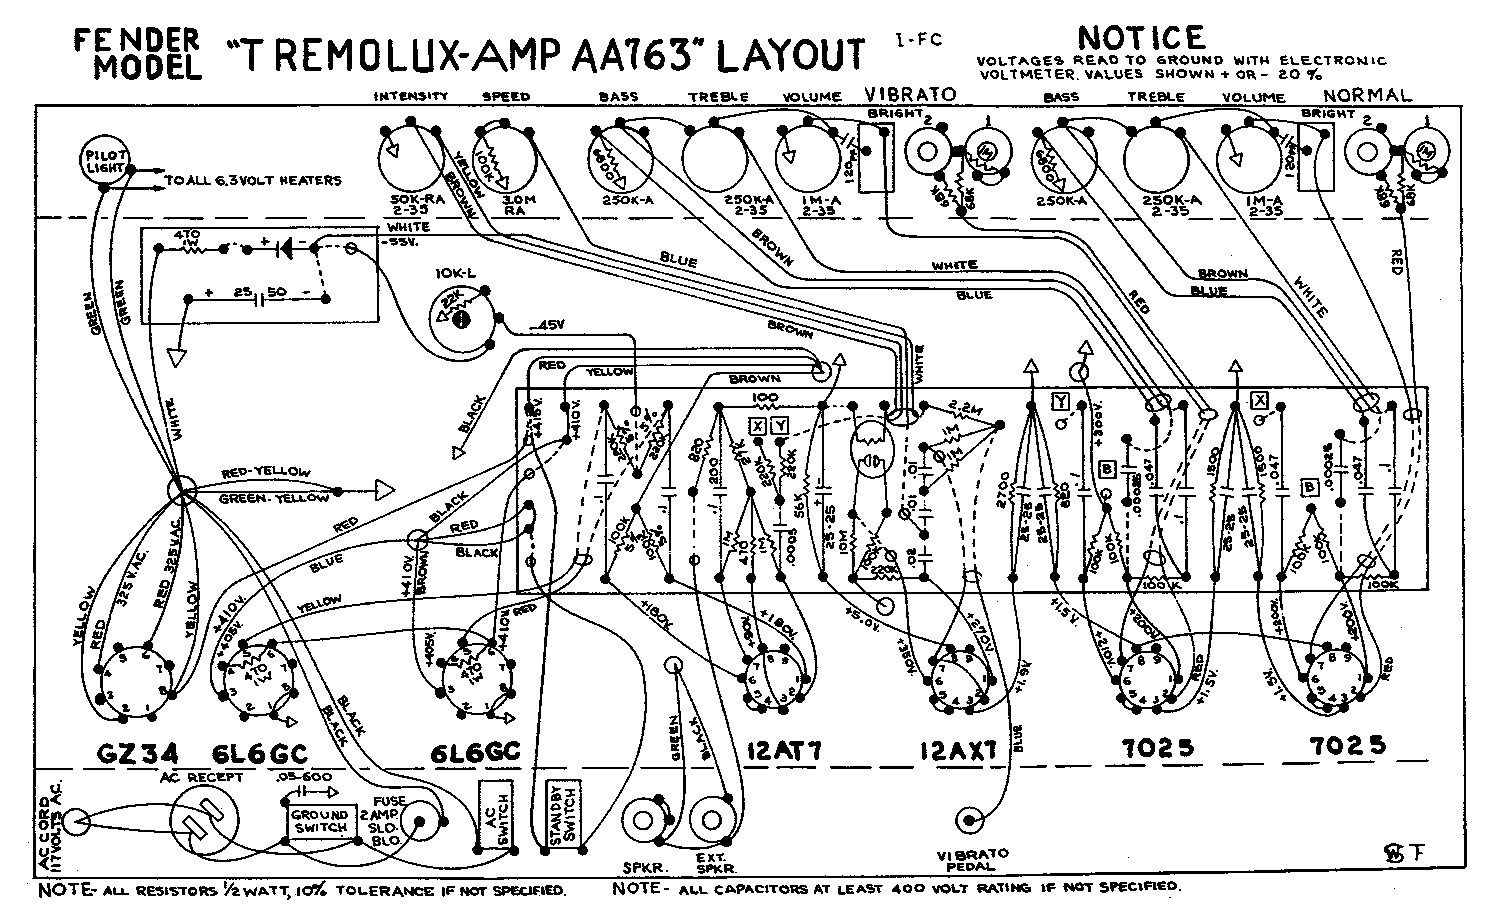 tremolux aa763 layout.pdf